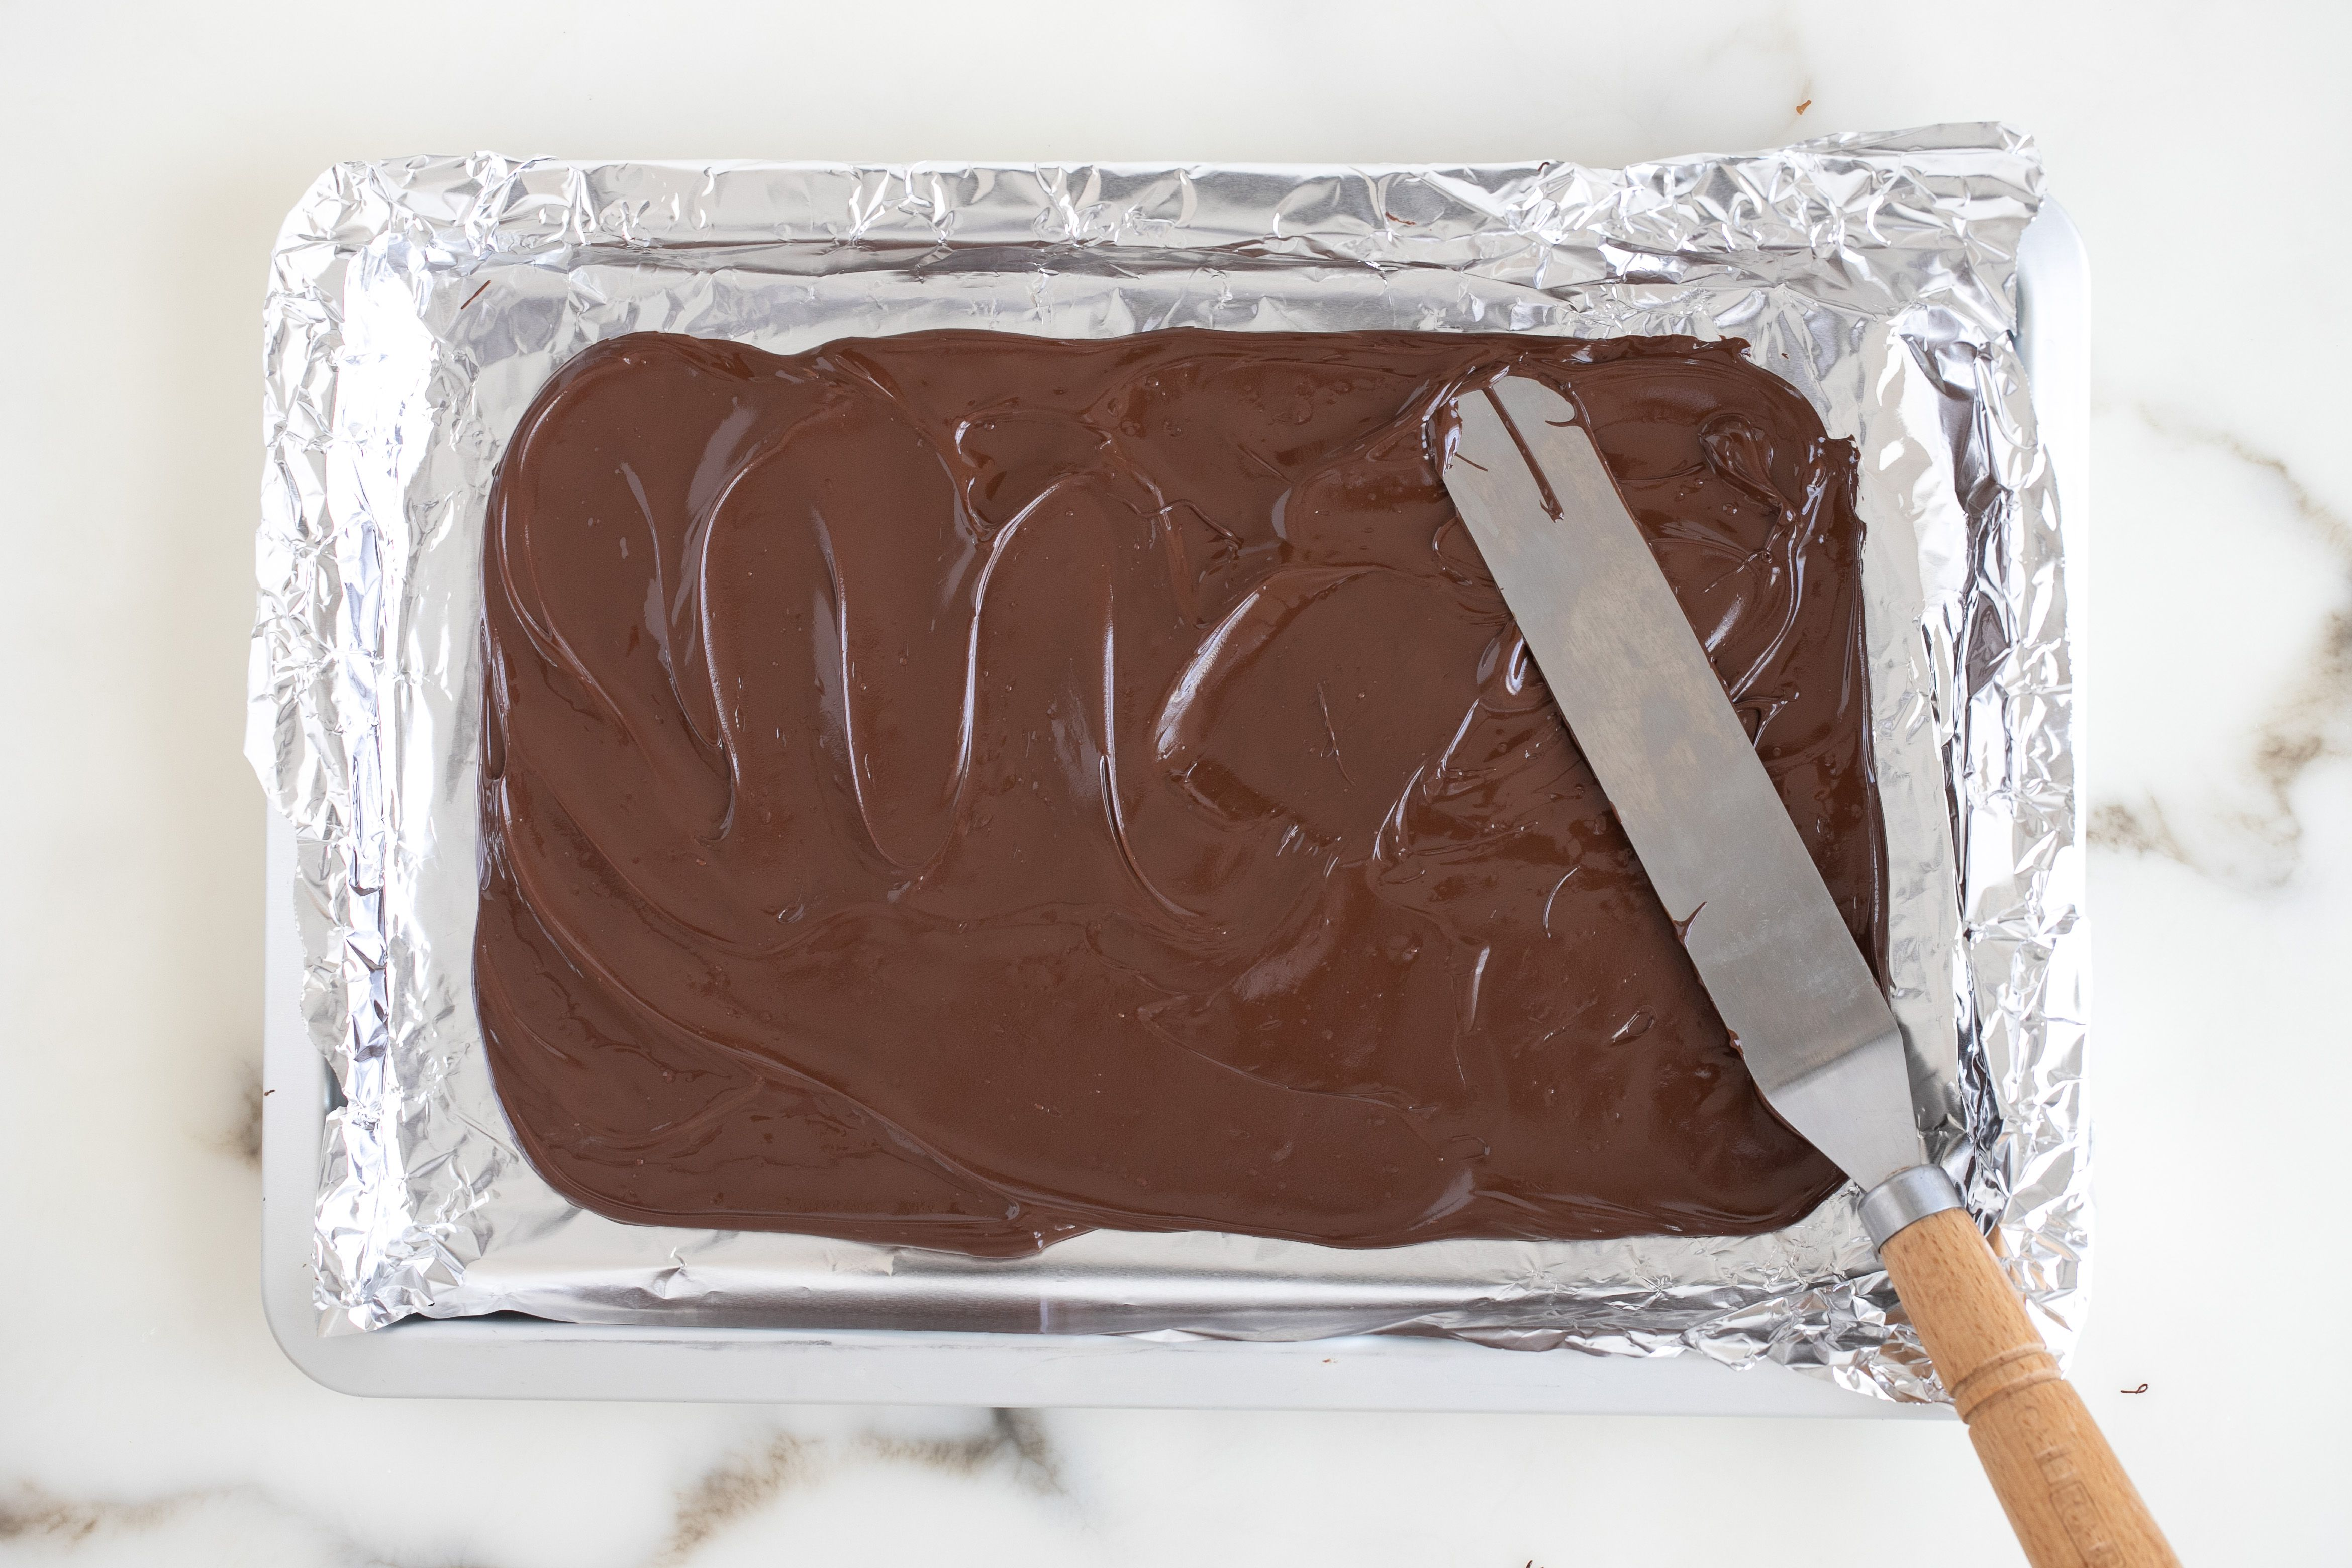 Pour chocolate onto cookie sheet